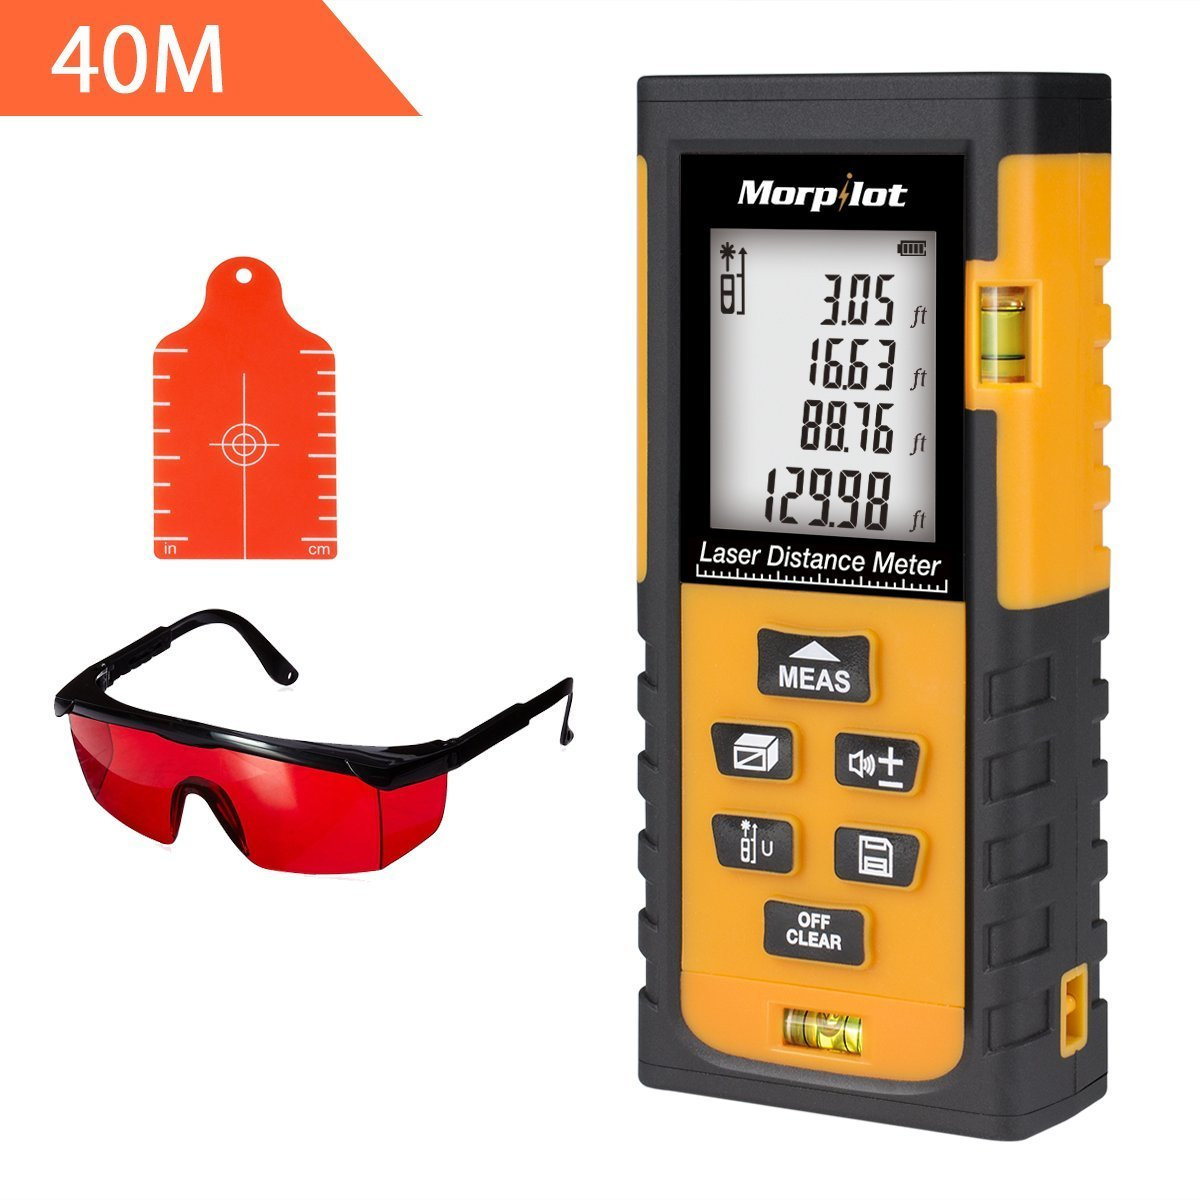 131ft Laser Distance Measurer - Morpilot Laser Tape Measure with Target Plate & Enhancing Glasses, Laser Measuring Tool with Pythagorean Mode, Measure Distance, Area, Volume Calculation